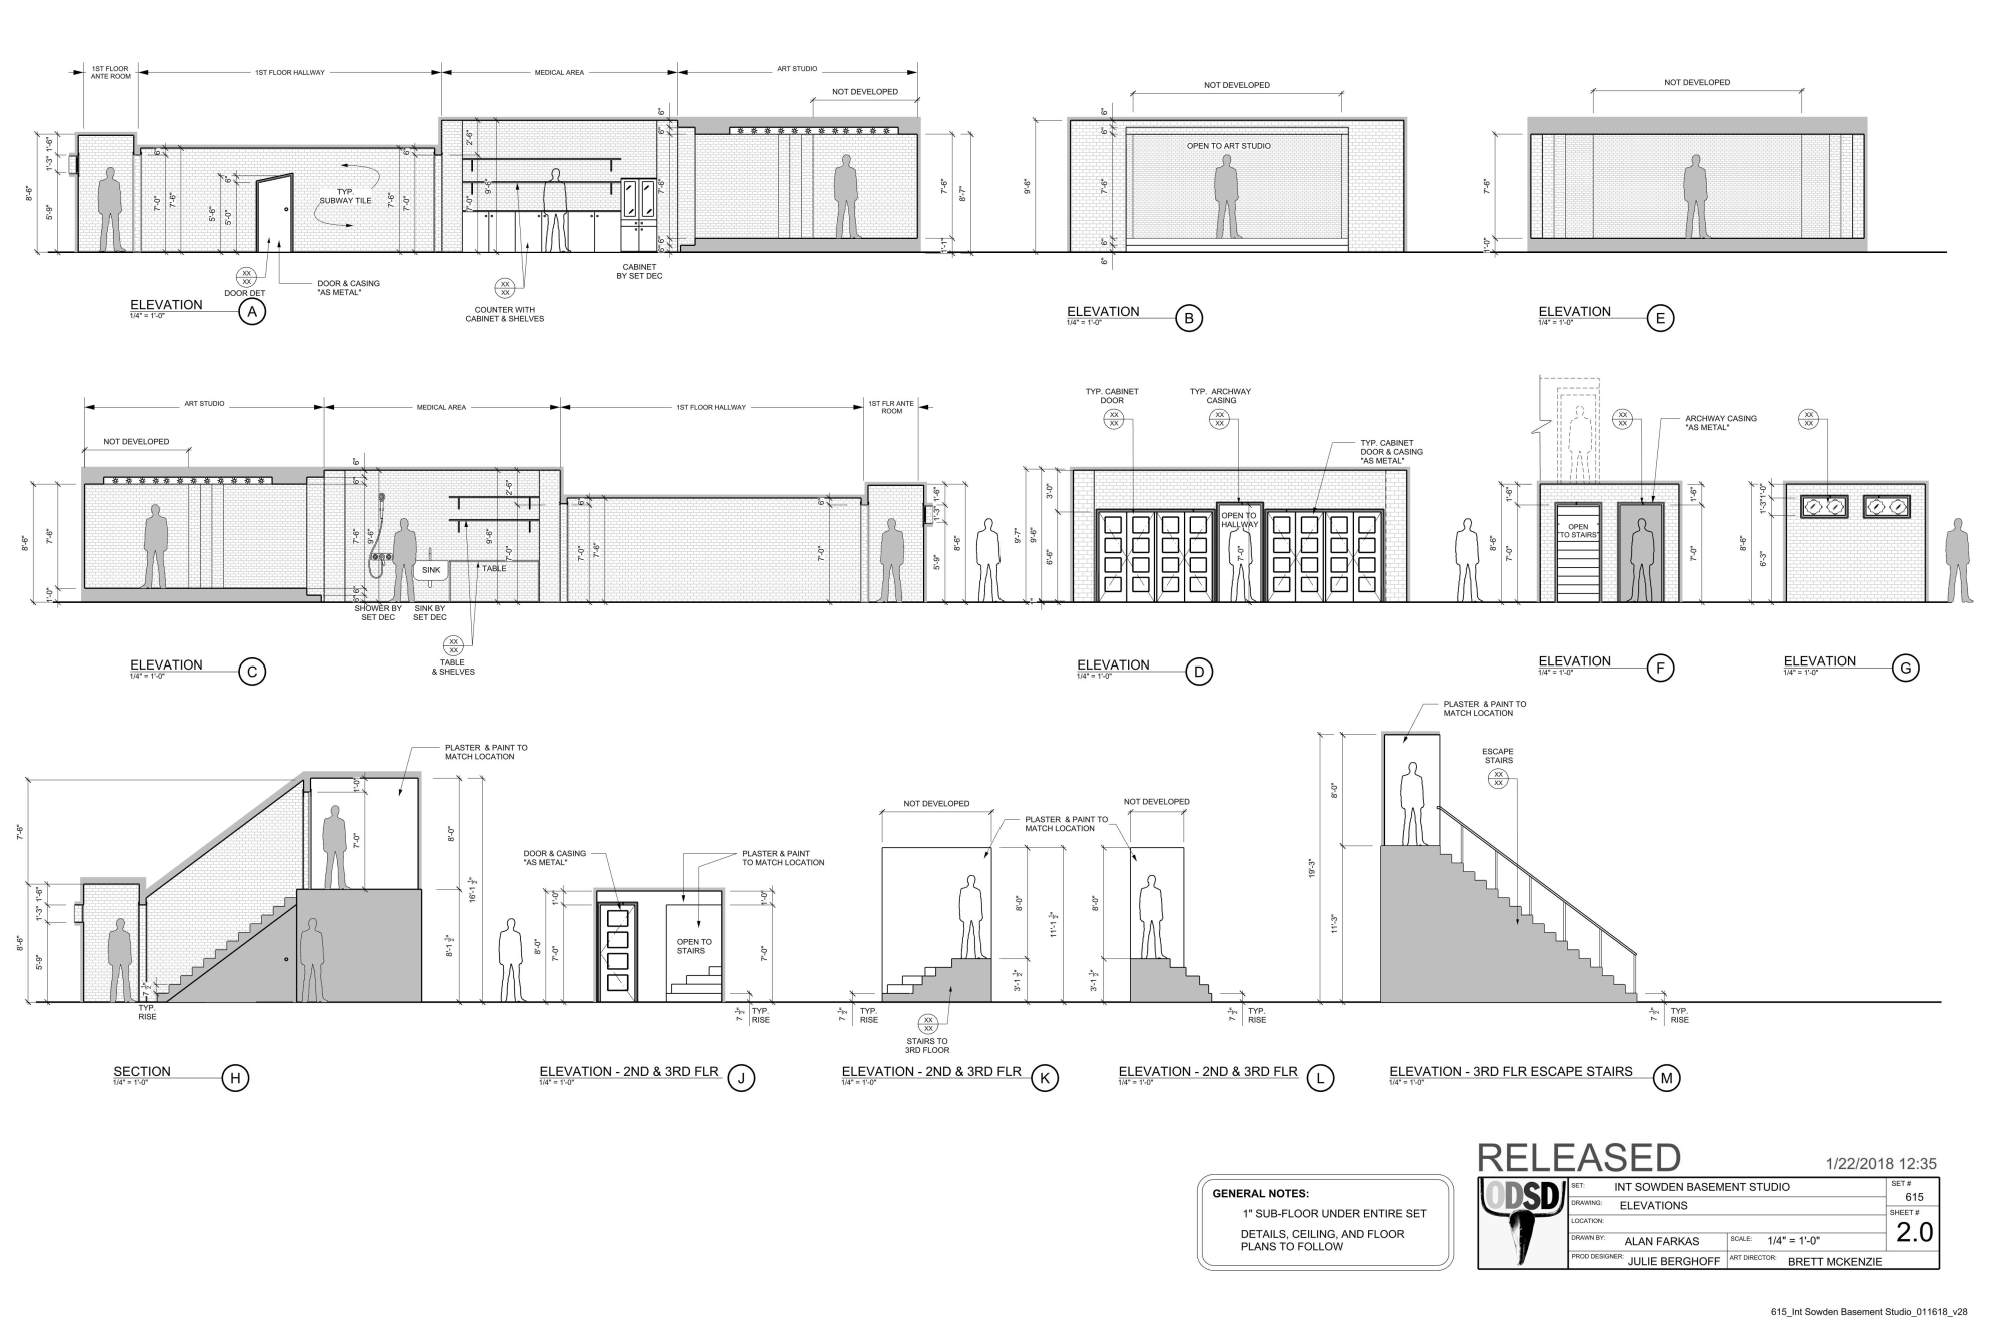 615_Int Sowden Basement Studio_Sht2.0_Elevations_012218_REL.jpg